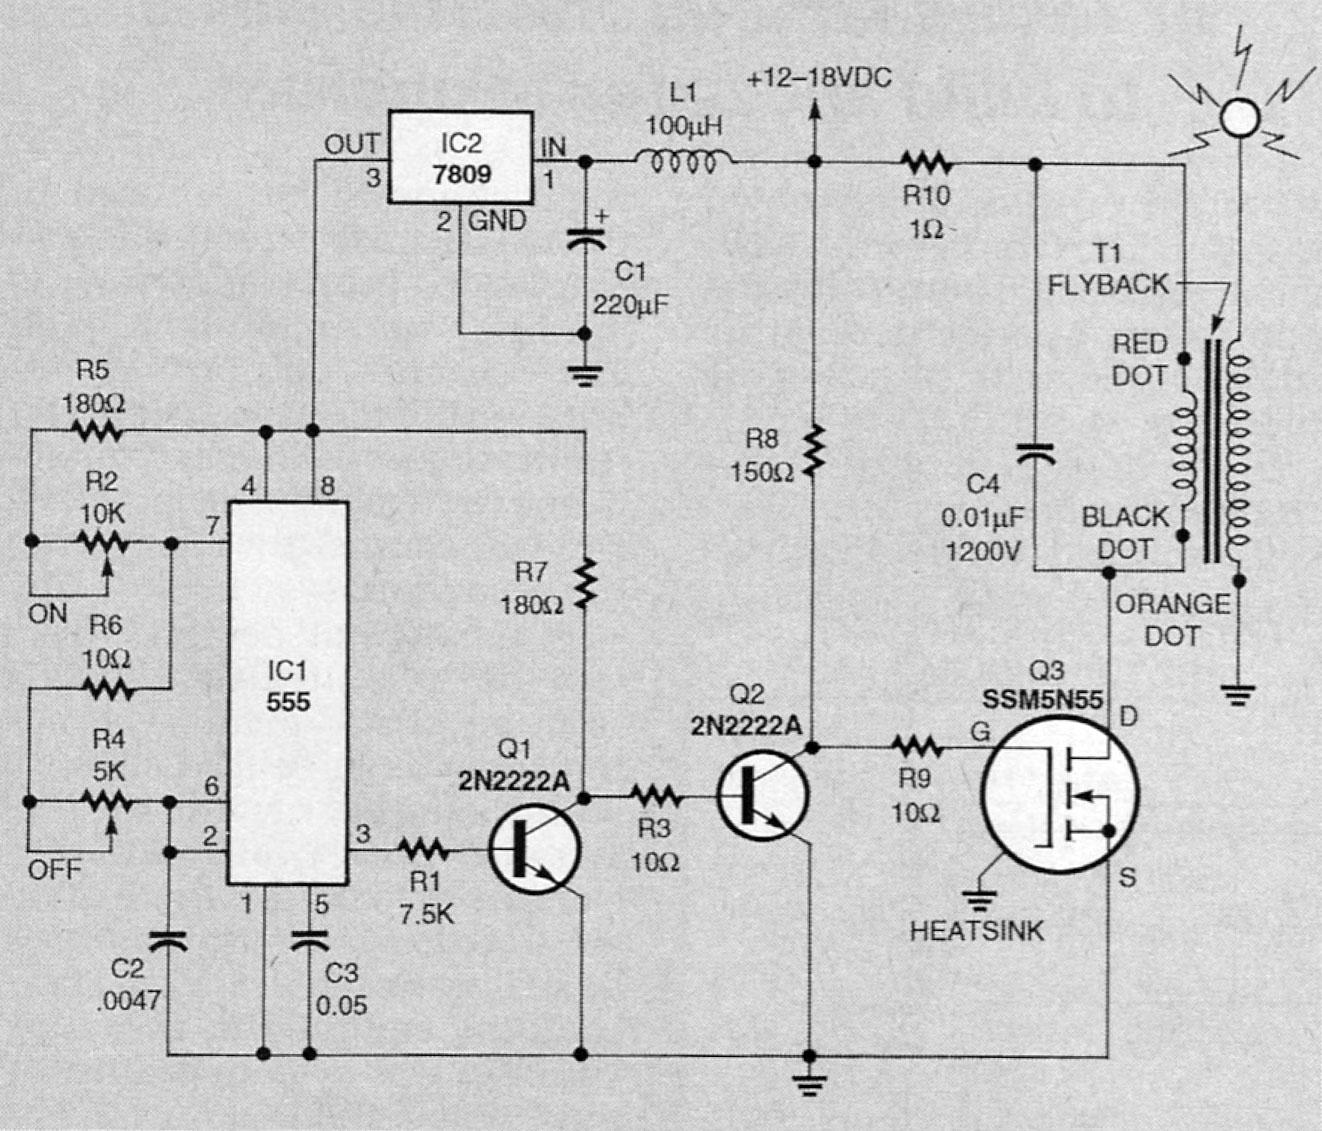 medium resolution of build a solid state tesla coil tesla universe solid state tesla coil schematic tesla coil schematic